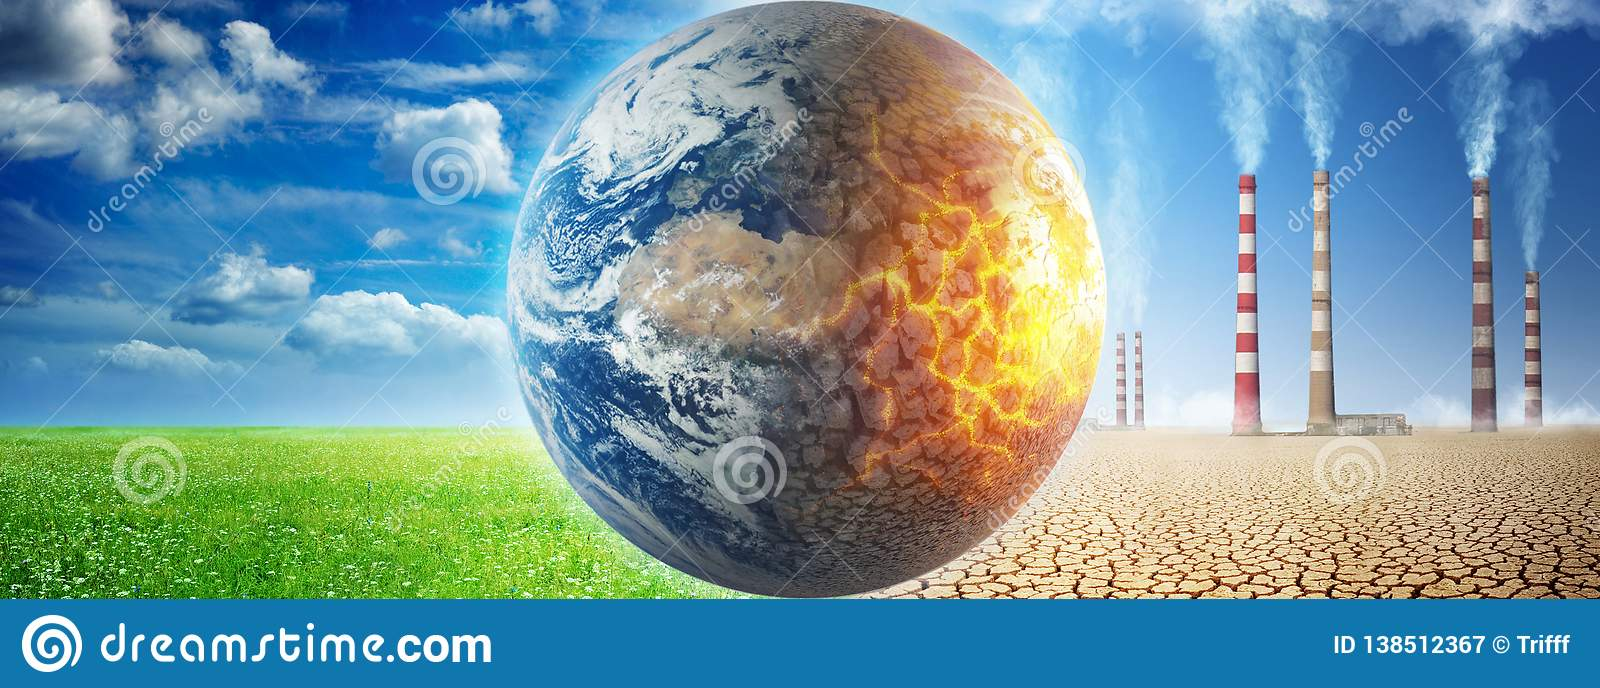 Earth on a background of grass and clouds versus a ruined Earth on a background of a dead desert with Smoking chimneys of